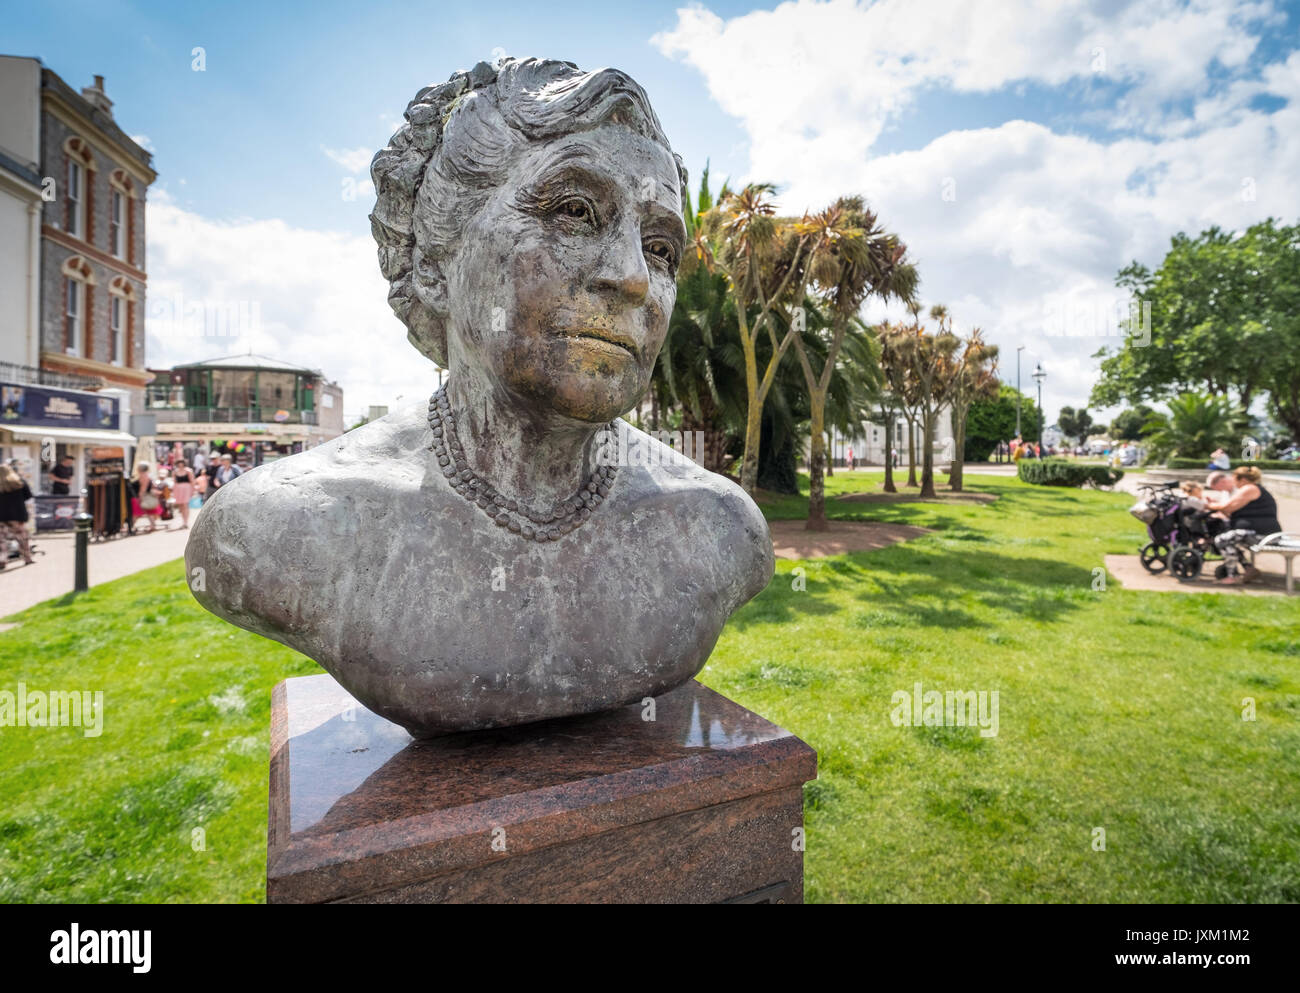 Agatha Christie sculpture, by Dutch artist Carol Van Den Boom-Cairns, situated in Palk Street, Torquay. - Stock Image